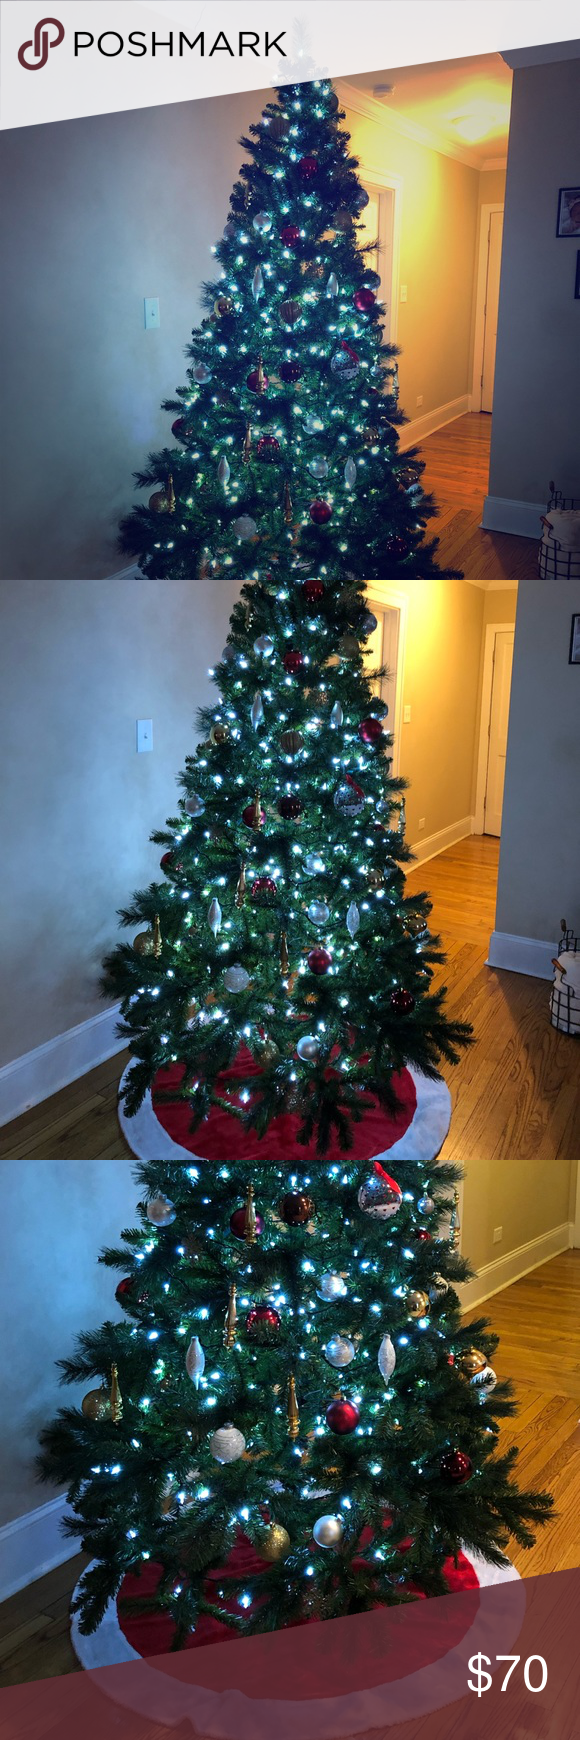 Christmas Tree 7.5ft Artificial Tree. Purchased from